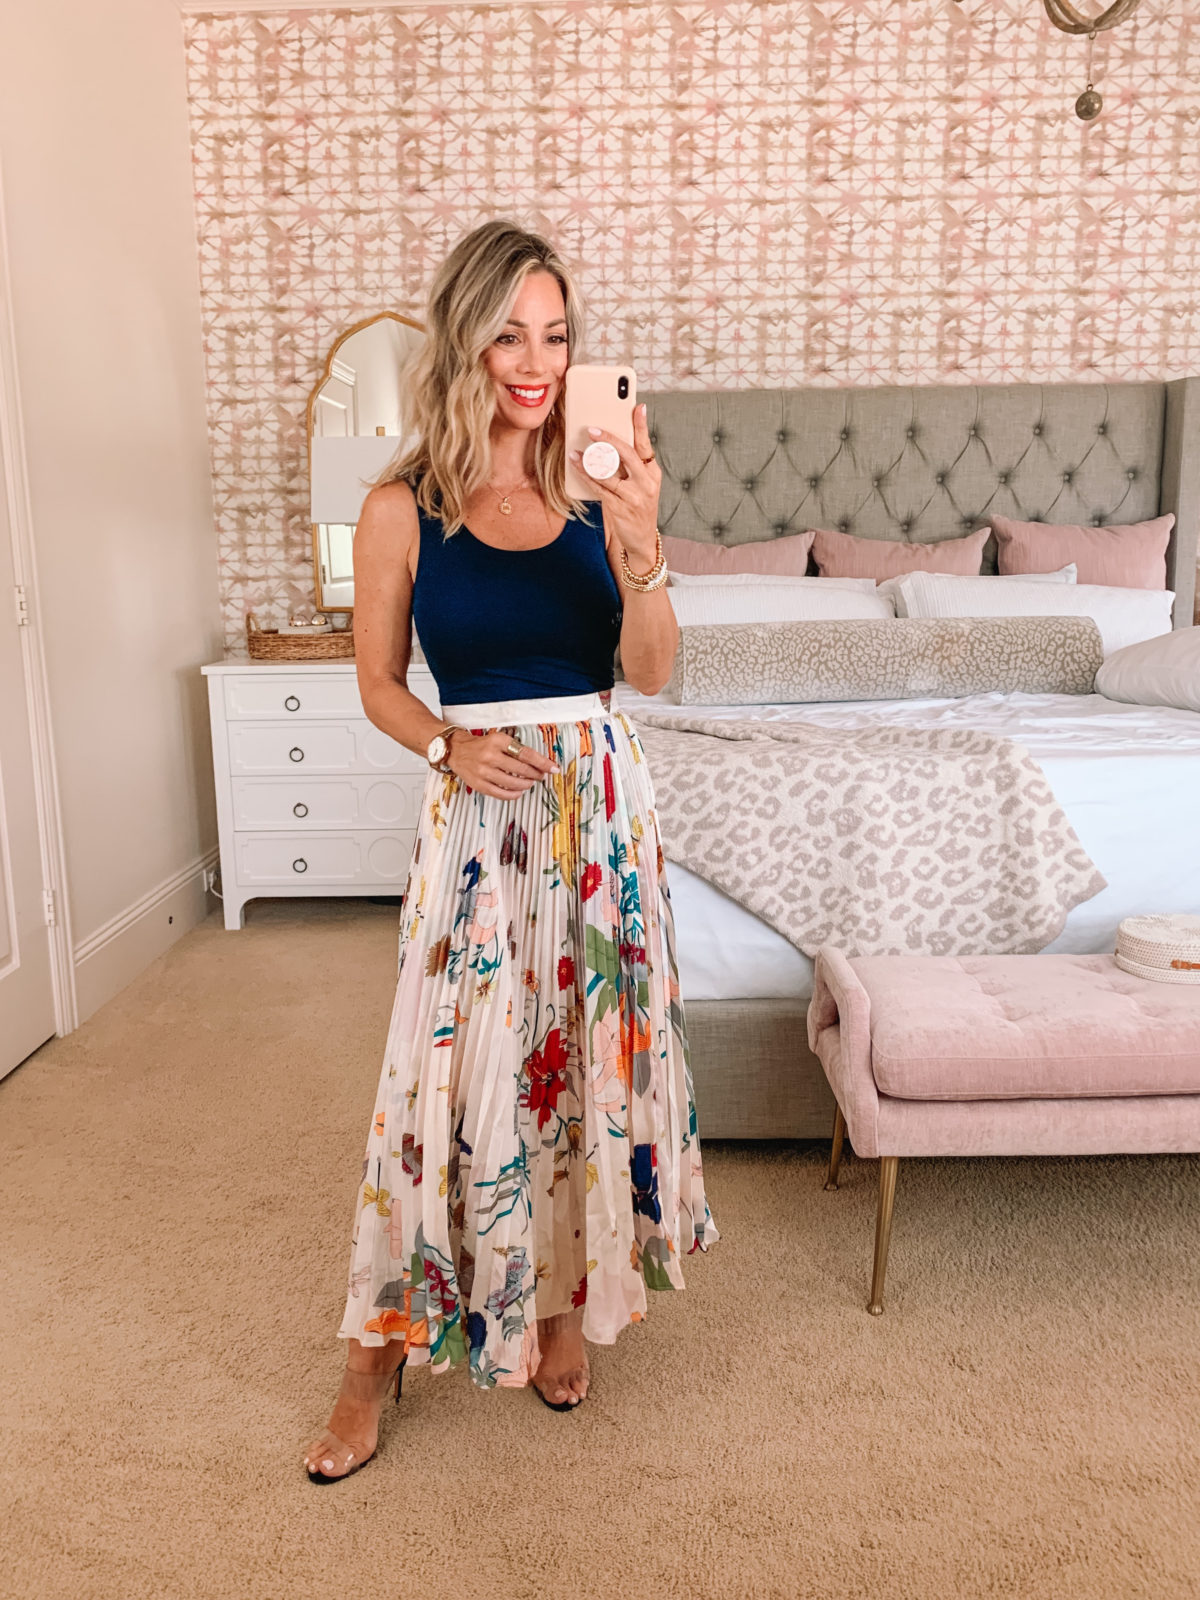 Amazon Fashion Faves, Bodysuit and Floral Skirt with Clear Sandals